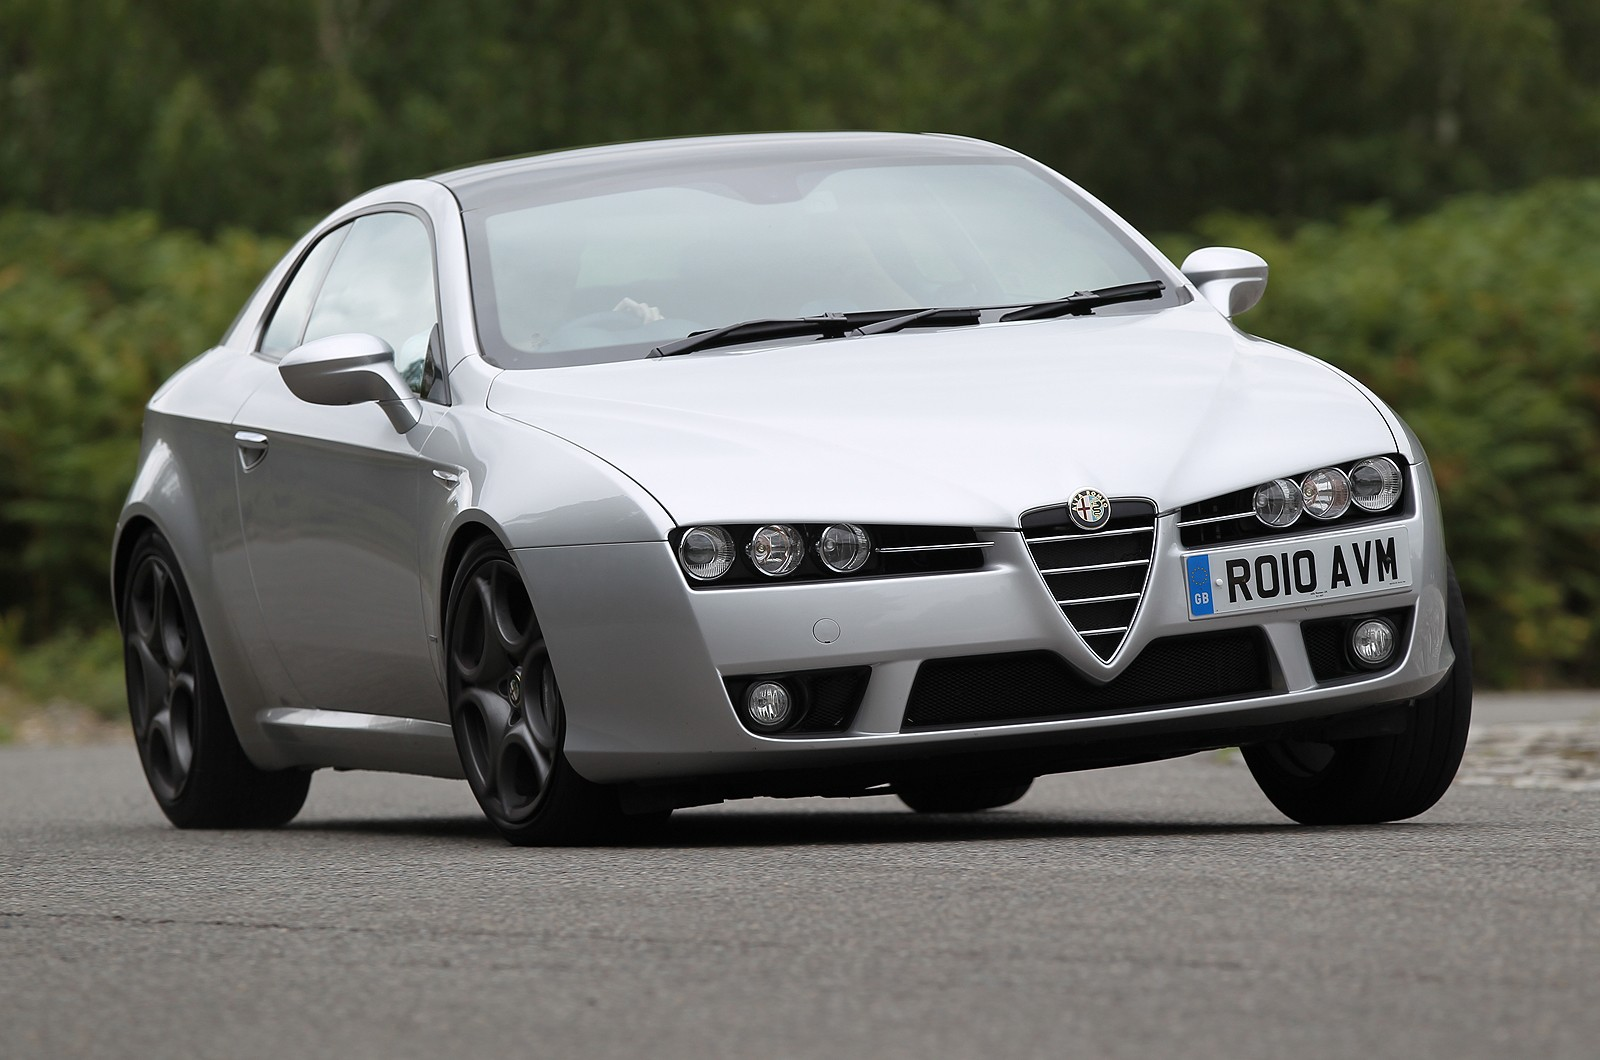 alfa romeo brera specs photos 2005 2006 2007 2008 2009 2010 autoevolution. Black Bedroom Furniture Sets. Home Design Ideas